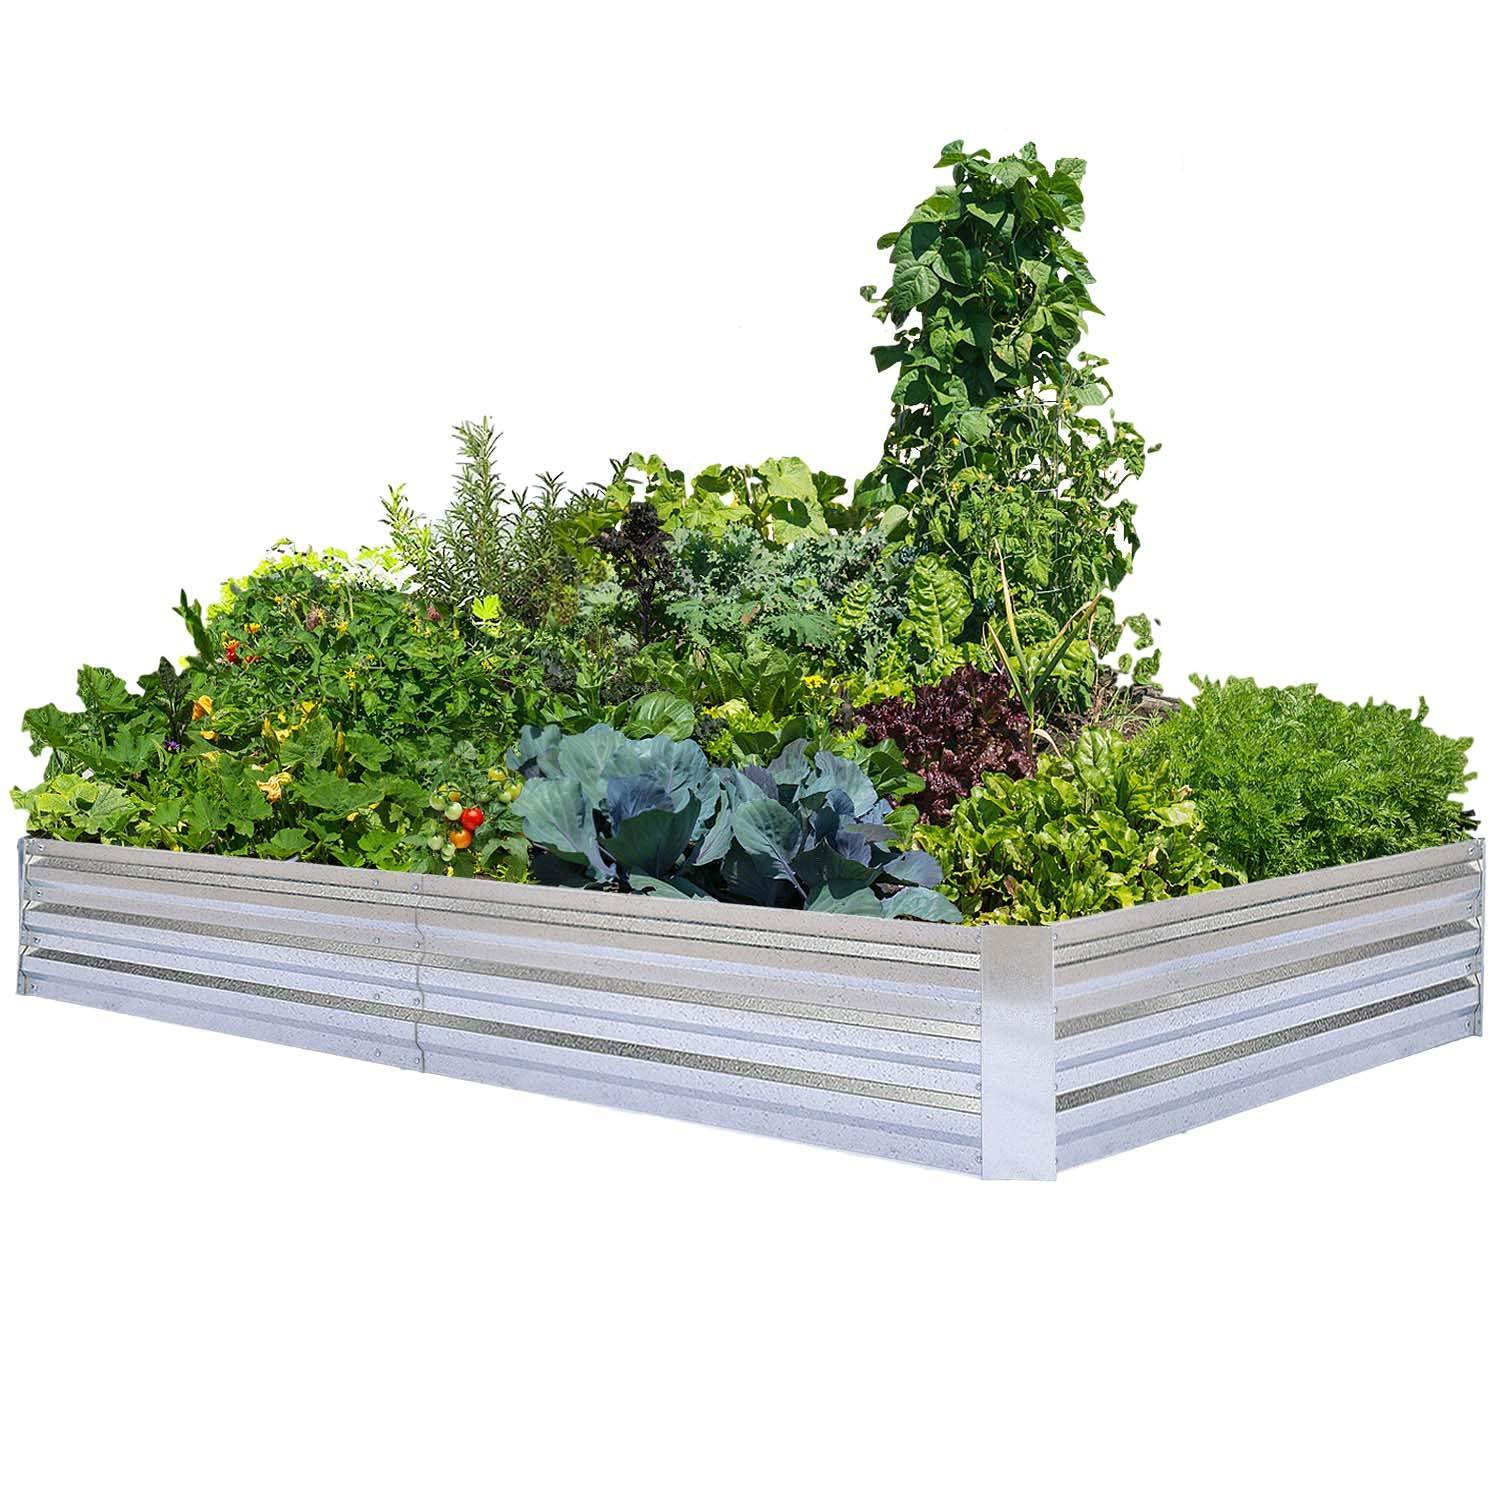 Heavy Duty Raised Garden Bed Planter Elevated Box - 8ft x 4ft x 1ft